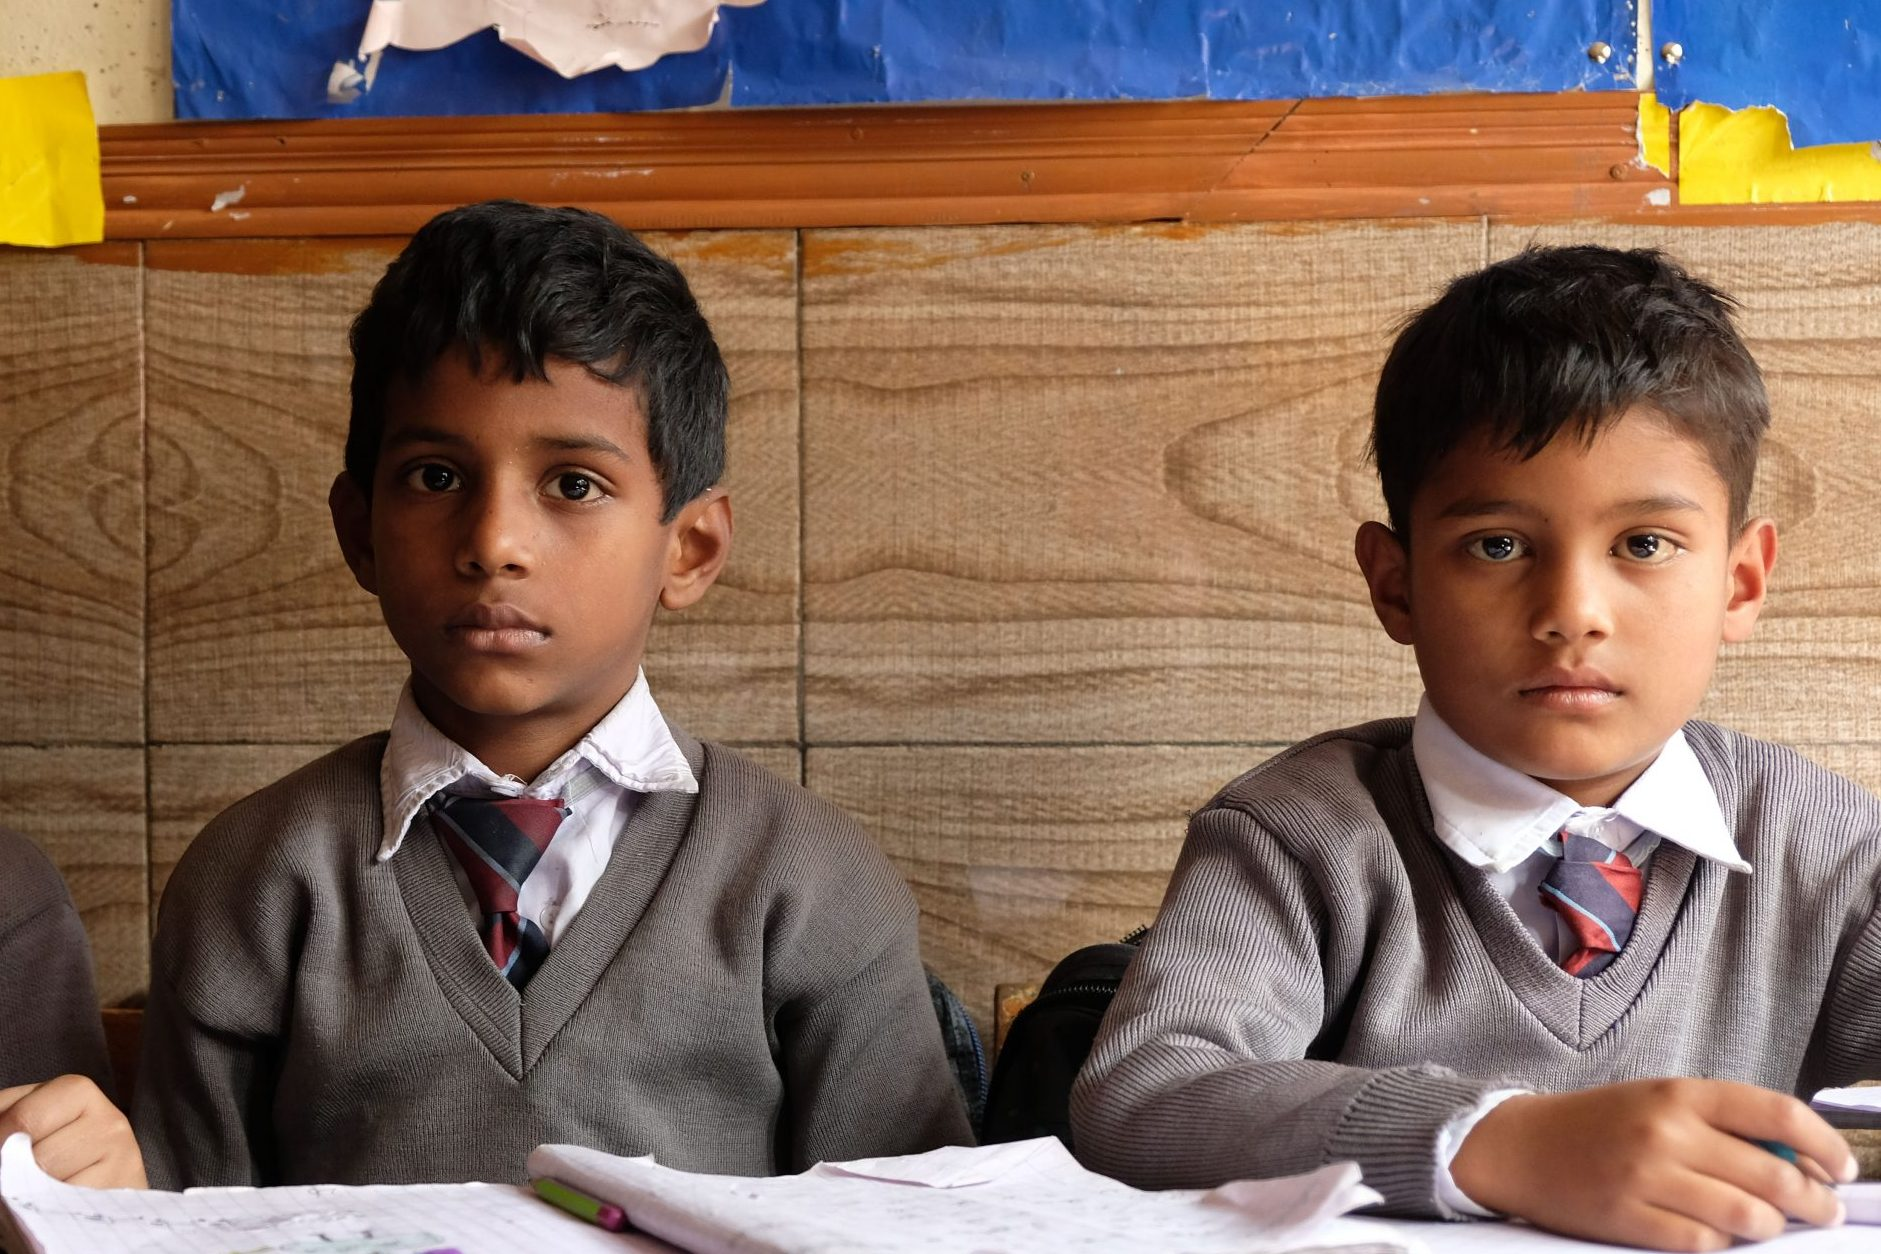 With stock image of Christian school children (© Aid to the Church in Need)